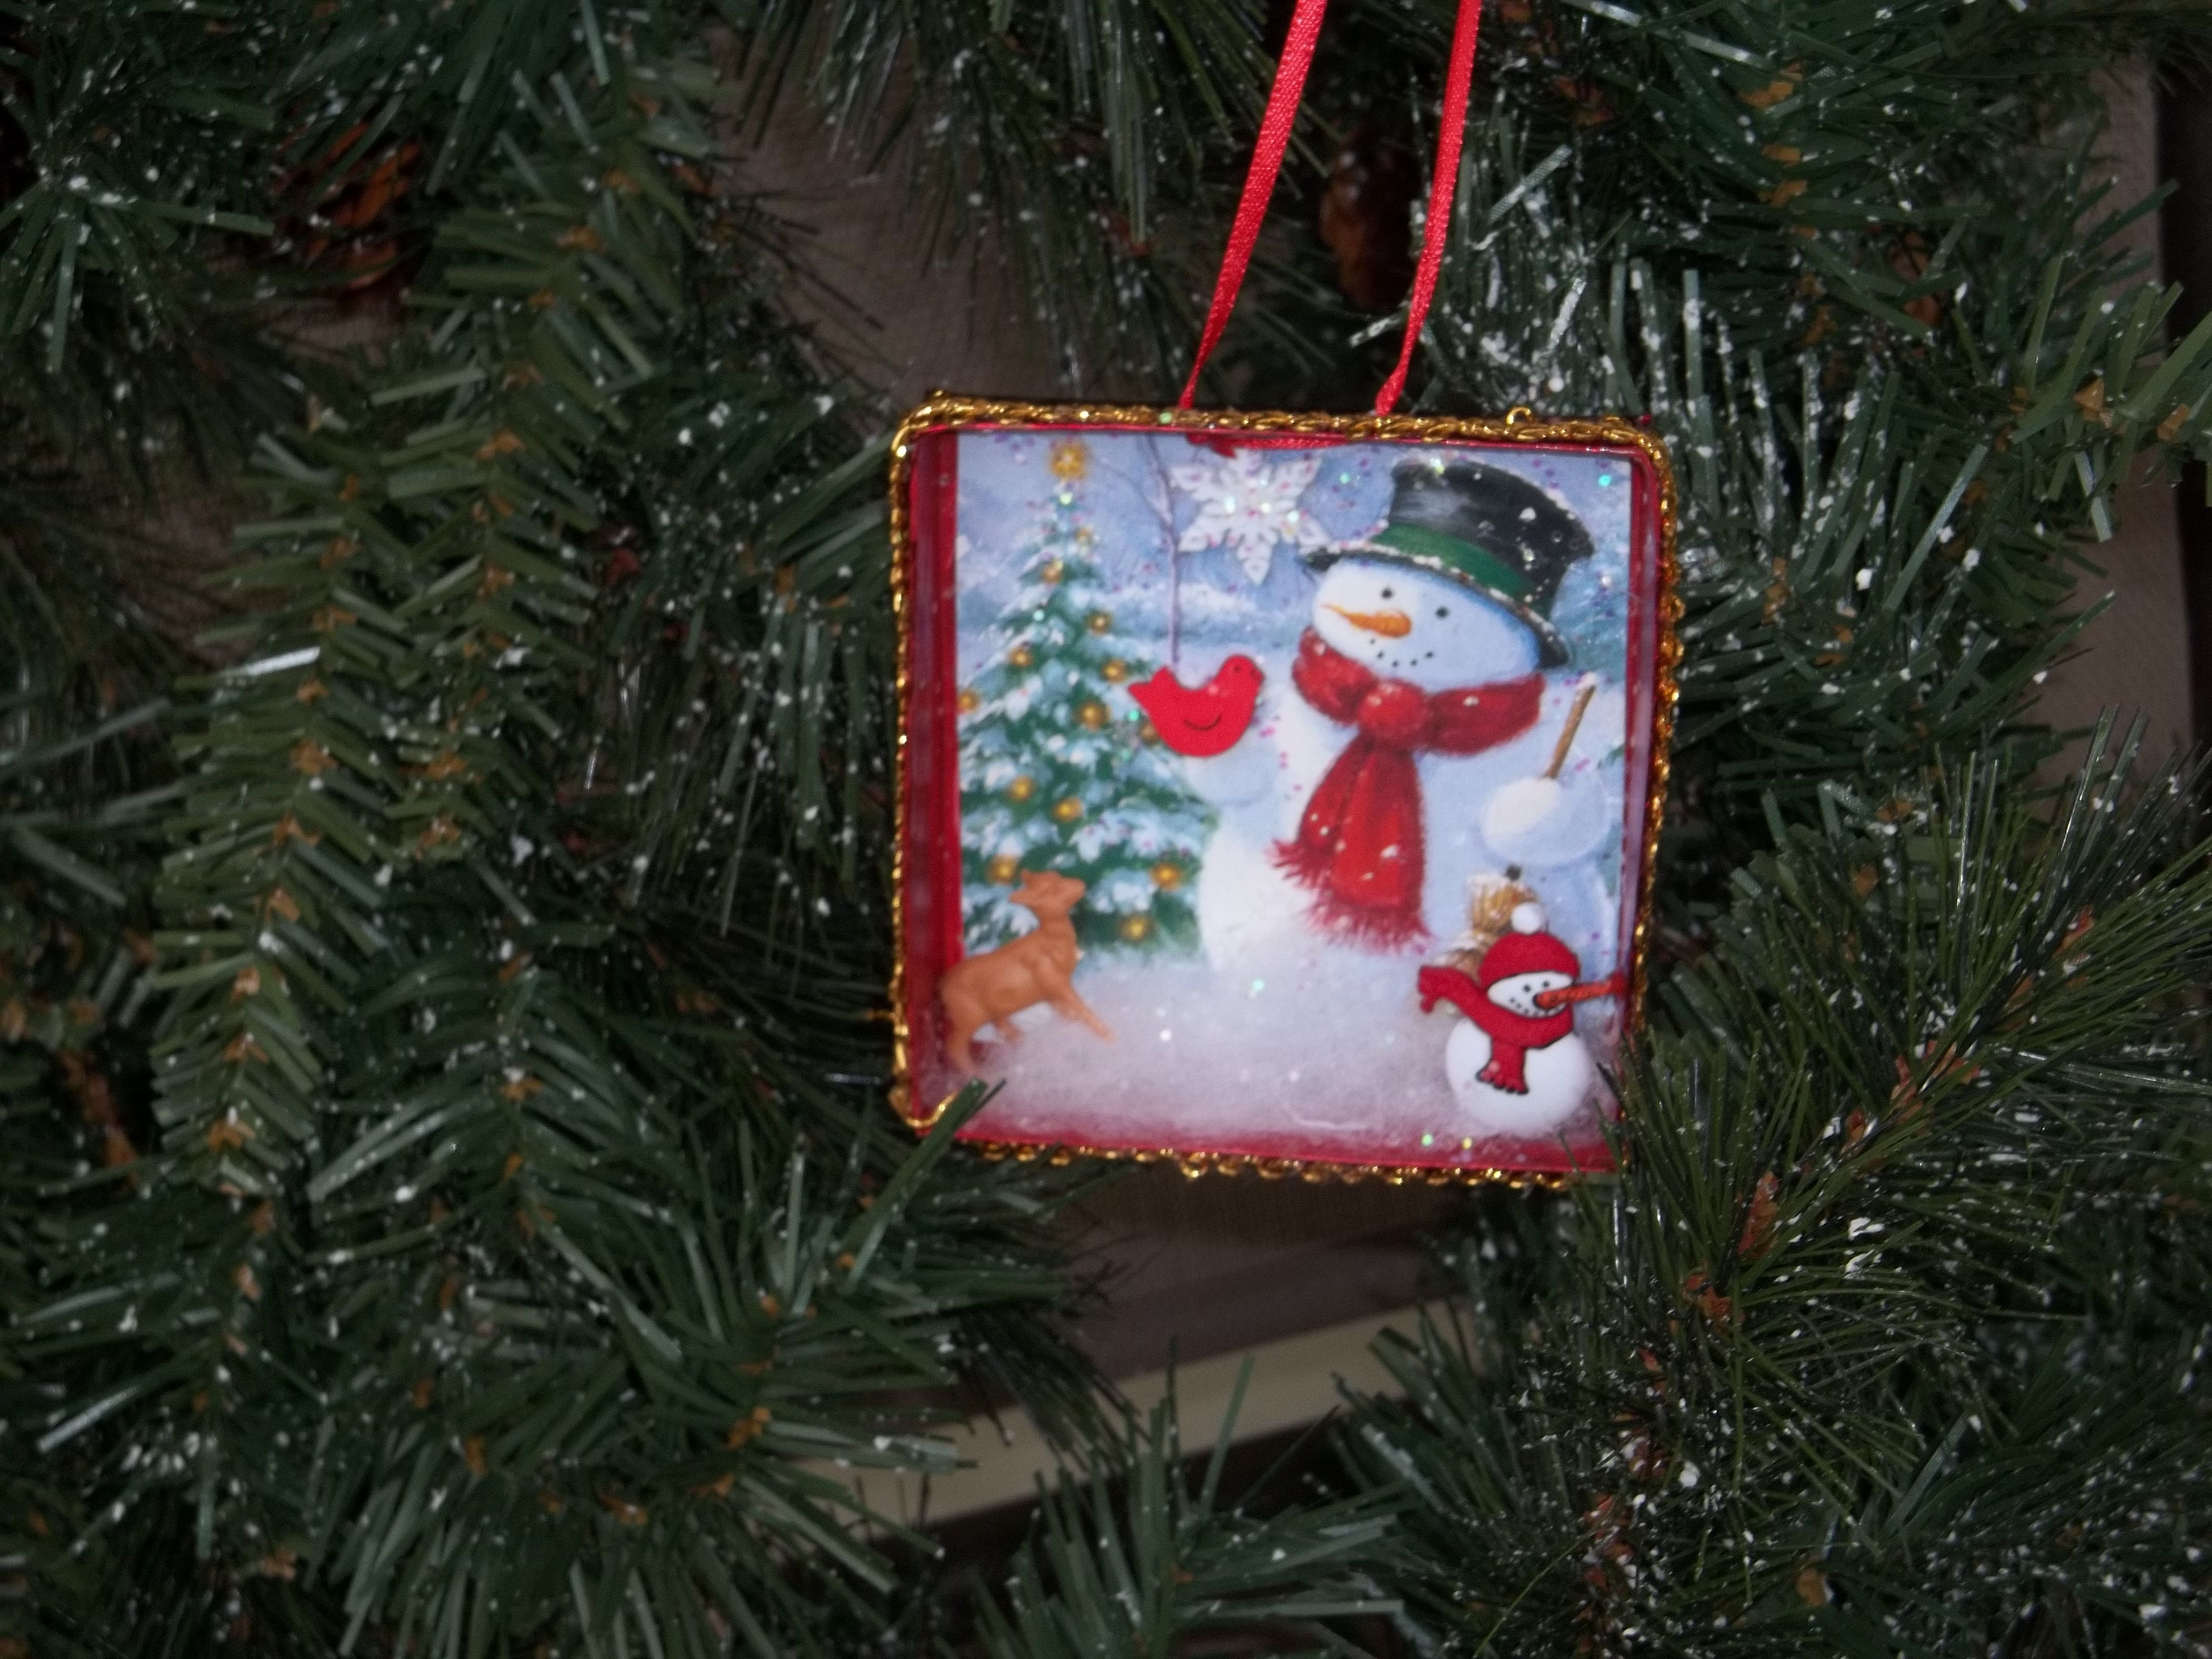 Diorama or shadow box Made using a jewelry box with a Christmas